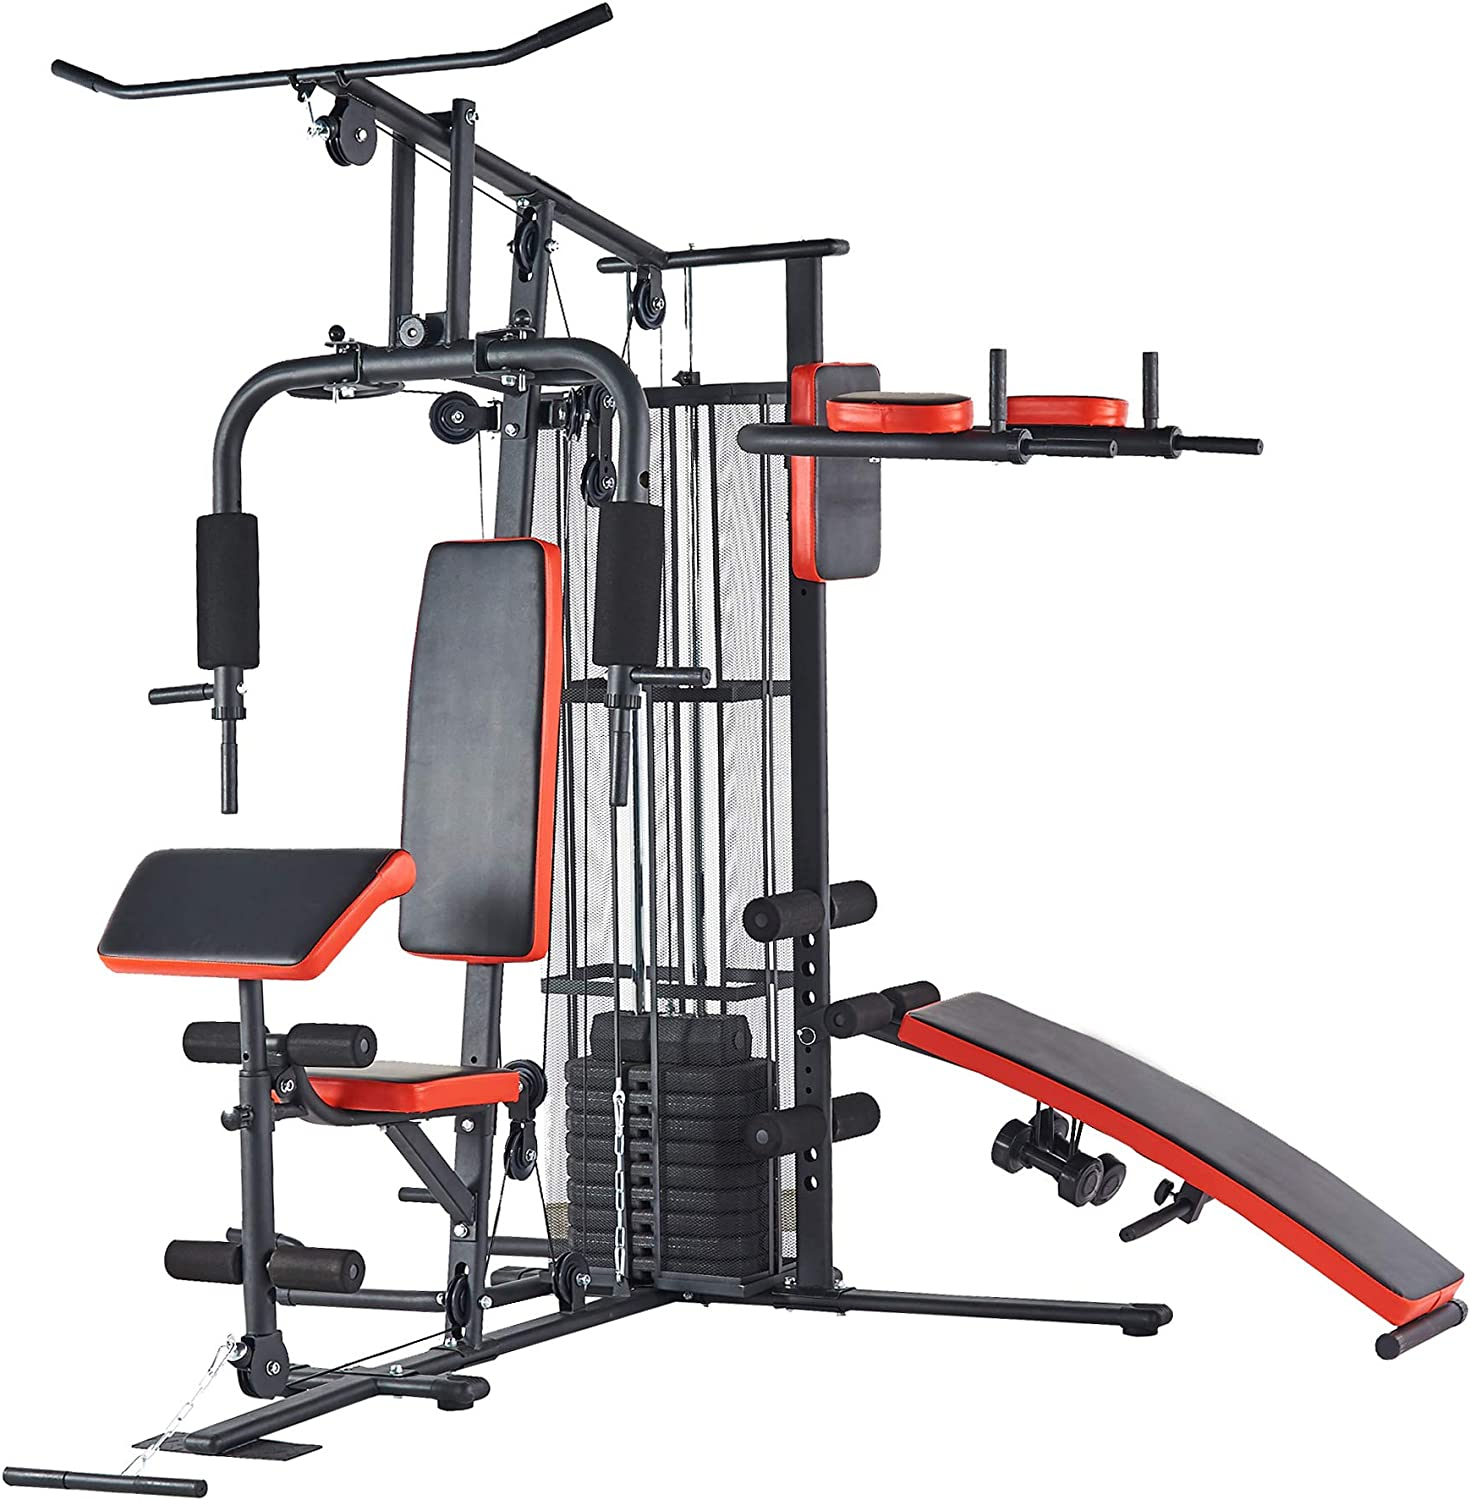 BalanceFrom RS 90XLS Home Gym System Multiple Purpose Workout Station with 380LB of Resistance